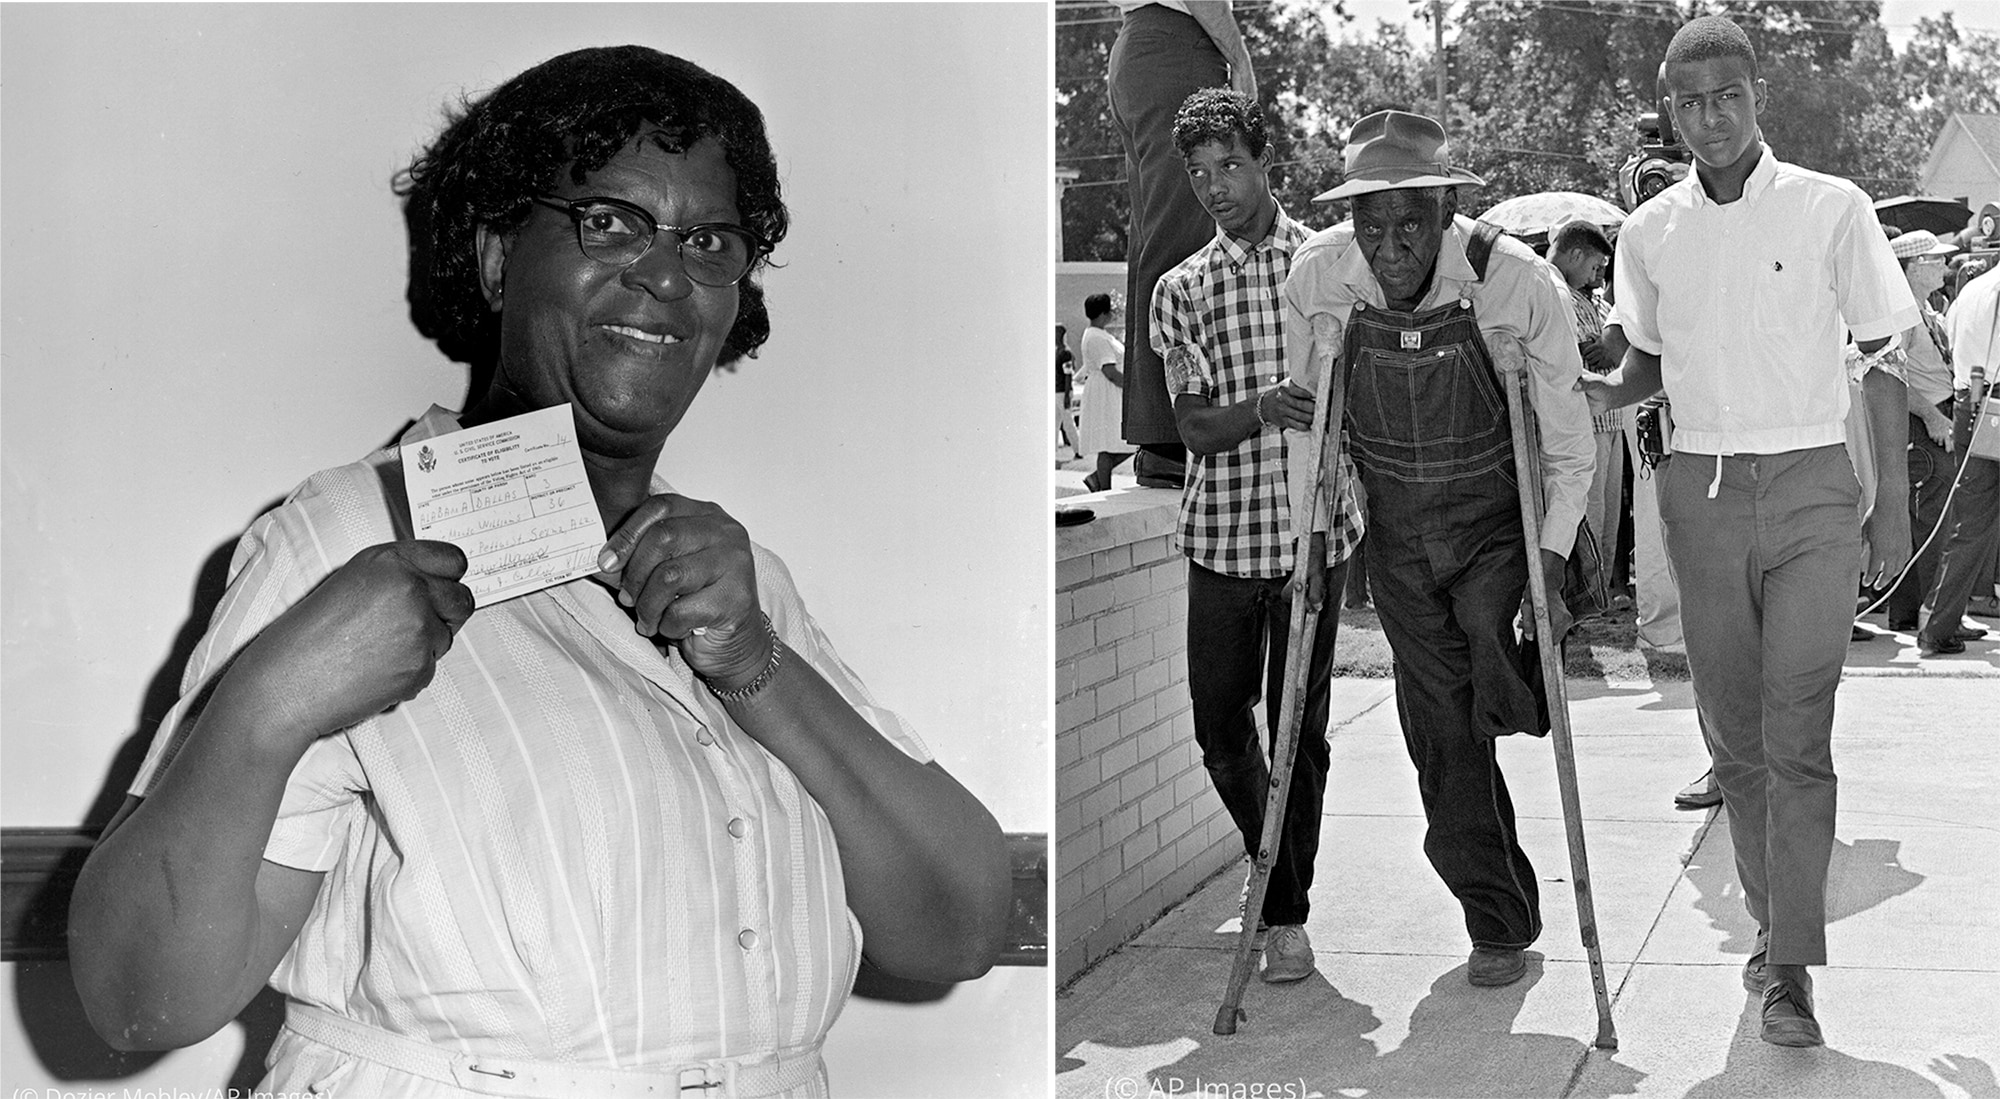 Two photos: Black woman holding up certificate (© Dozier Mobley/AP Images) and one-legged Black man with crutches being helped by two other men (© AP Images)